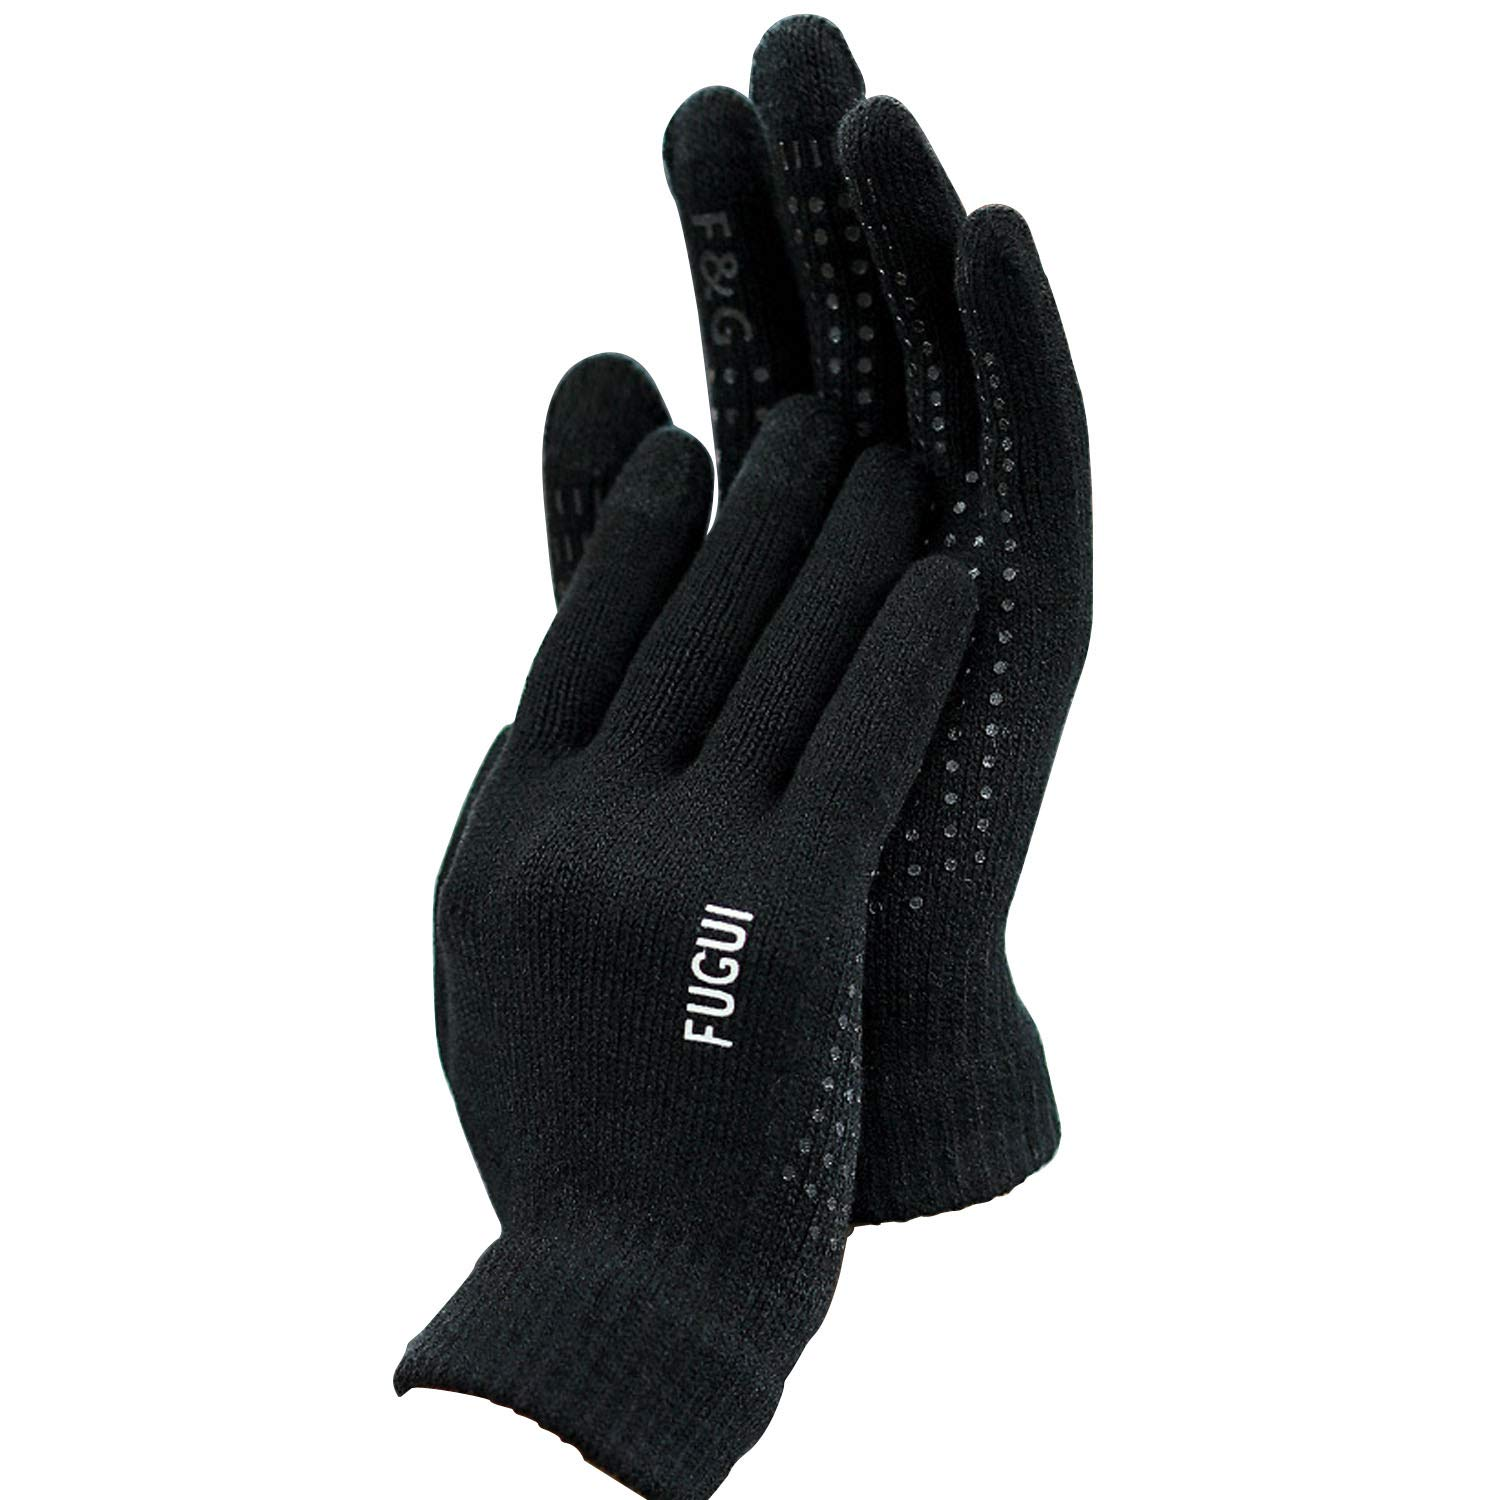 bc45be736e Amazon.com: AODRAY Copper Infused Touch Screen Gloves Anti Slip Palm For  Driving & Phone Grip: Clothing